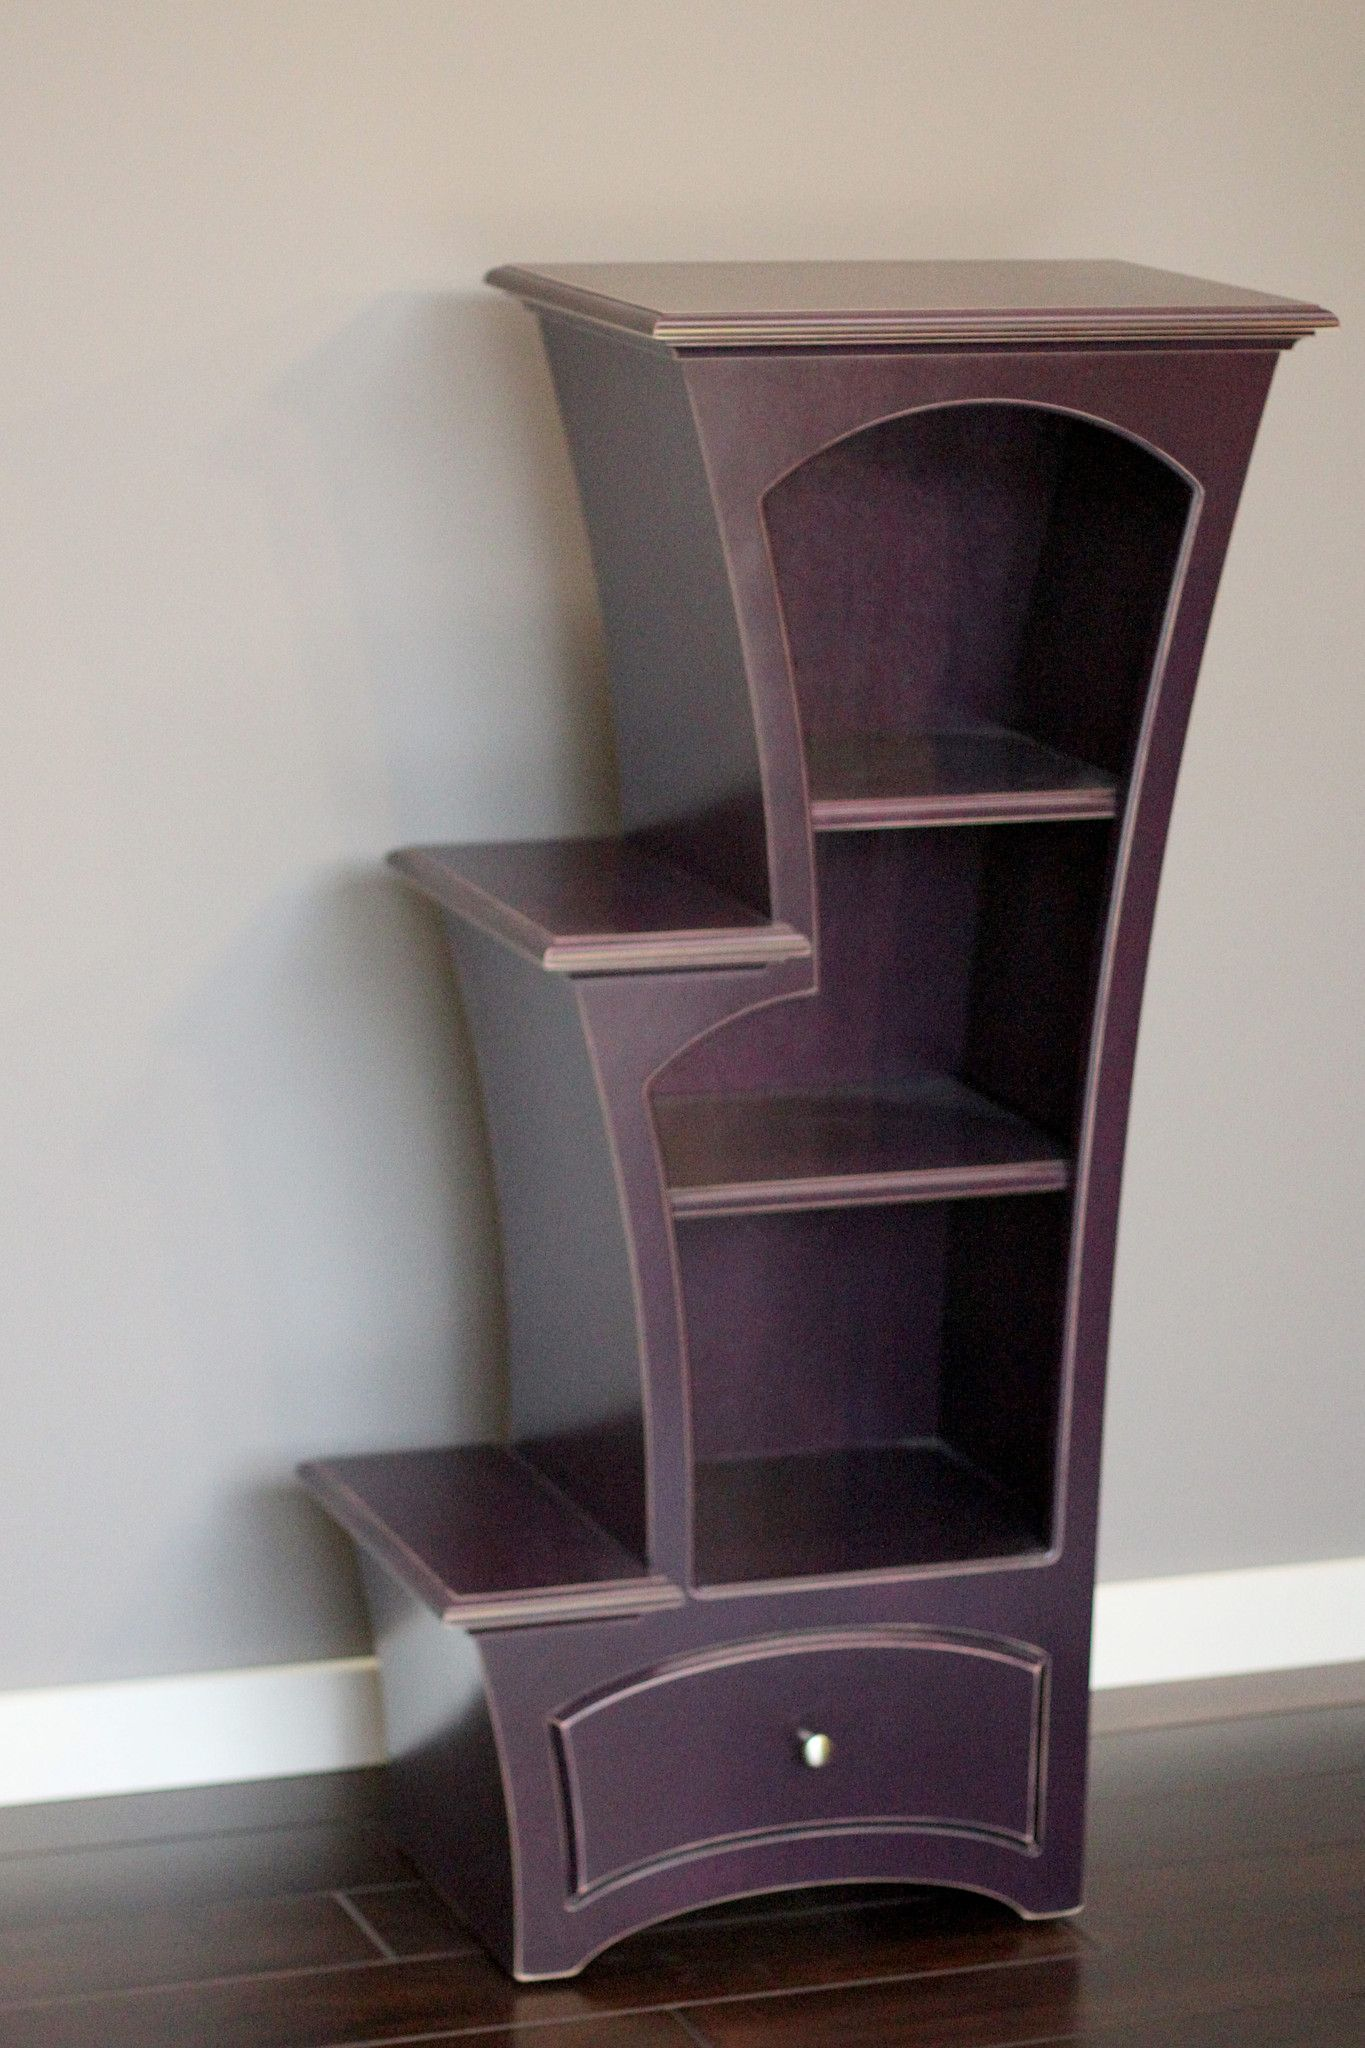 Bookcase No. 7 - Stepped Display Bookcase | Bookcase ...